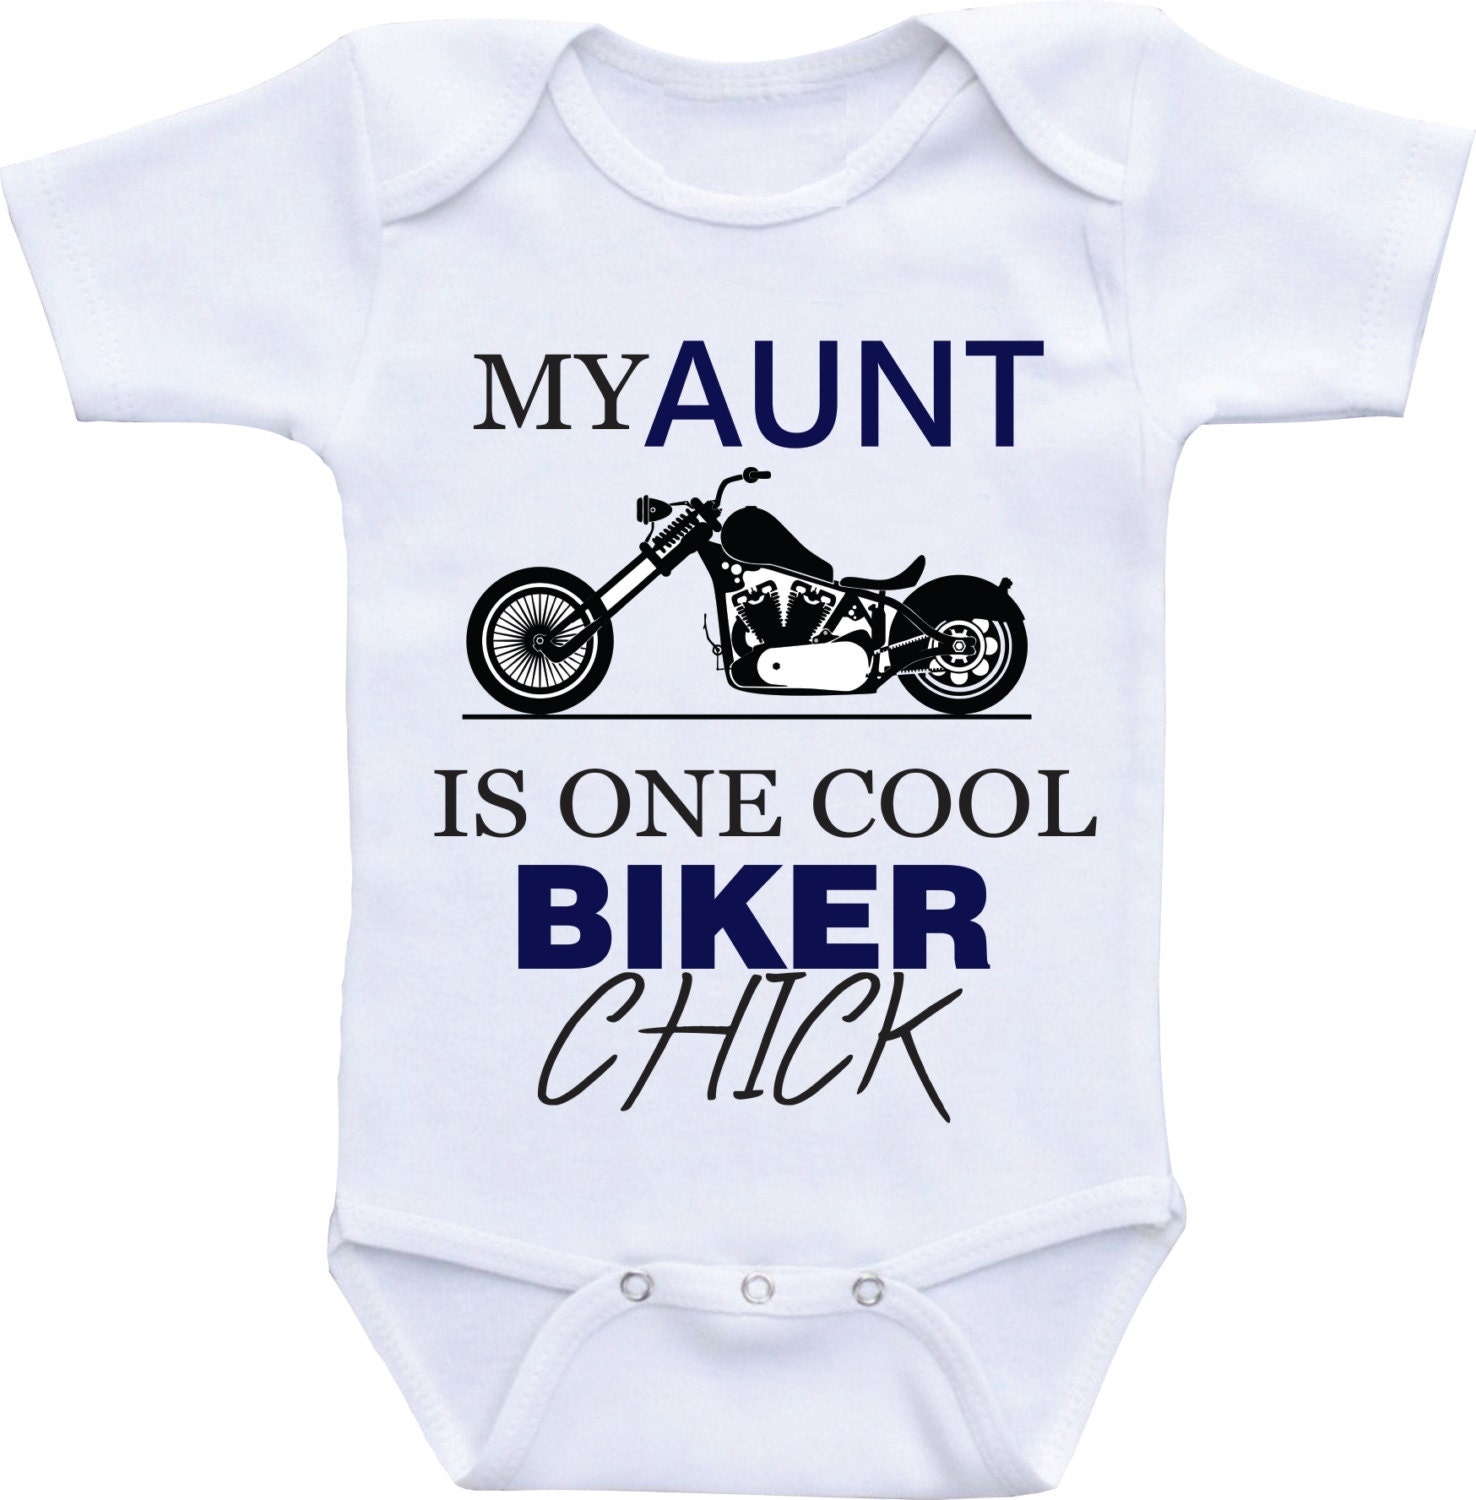 Biker Baby Clothes Newest and Cutest Baby Clothing Collection by